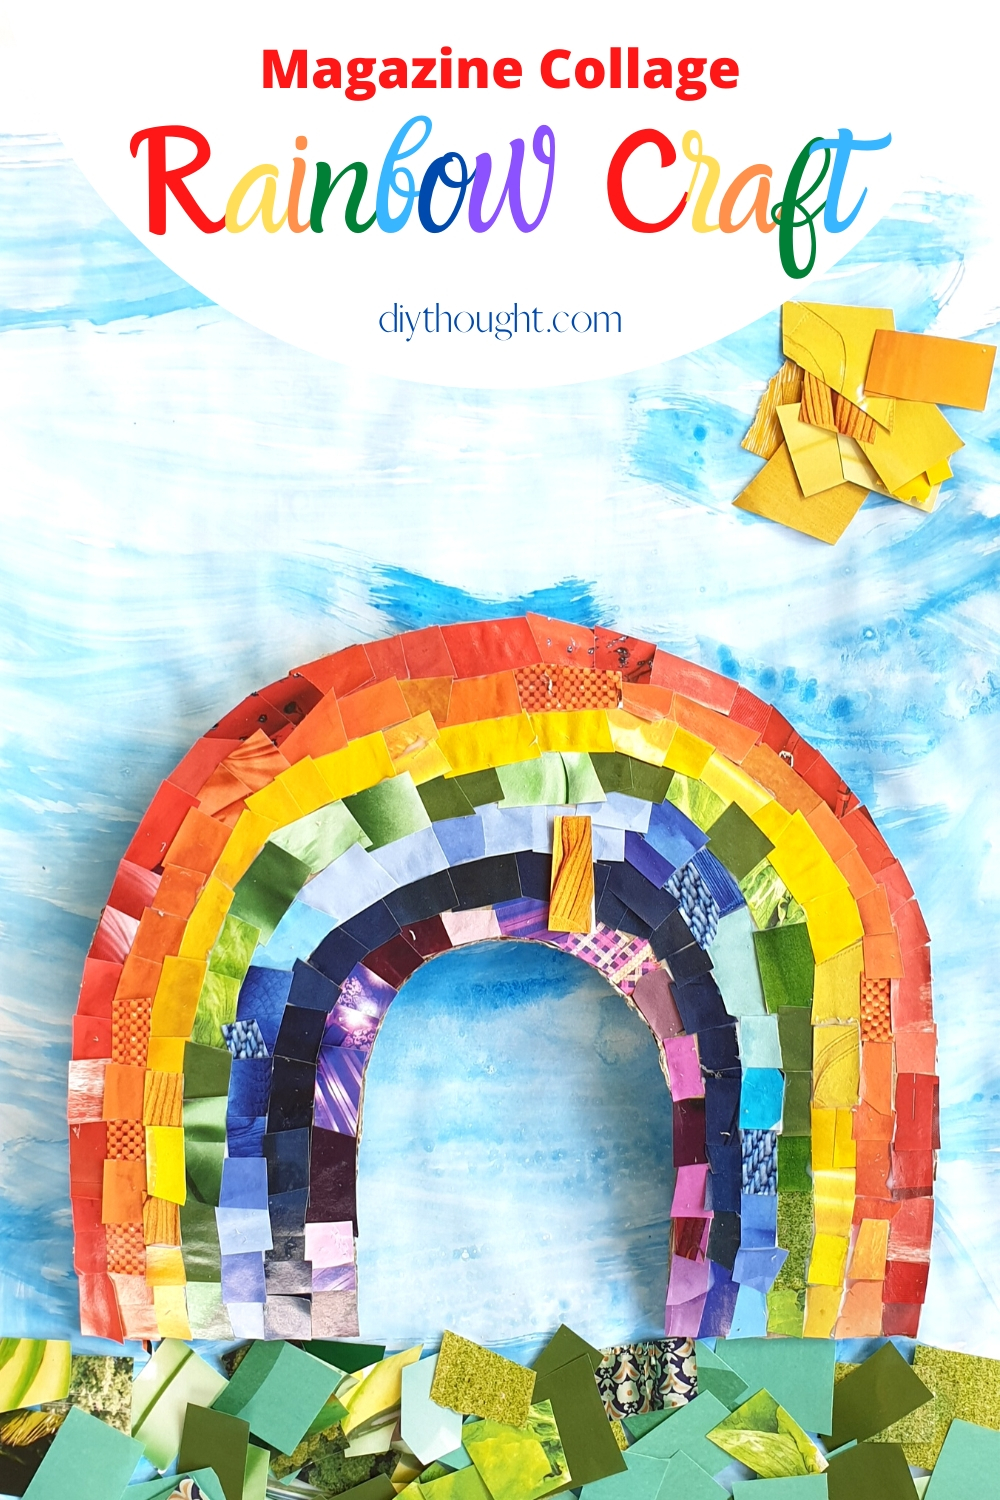 DIY rainbow collage from magazine clippings